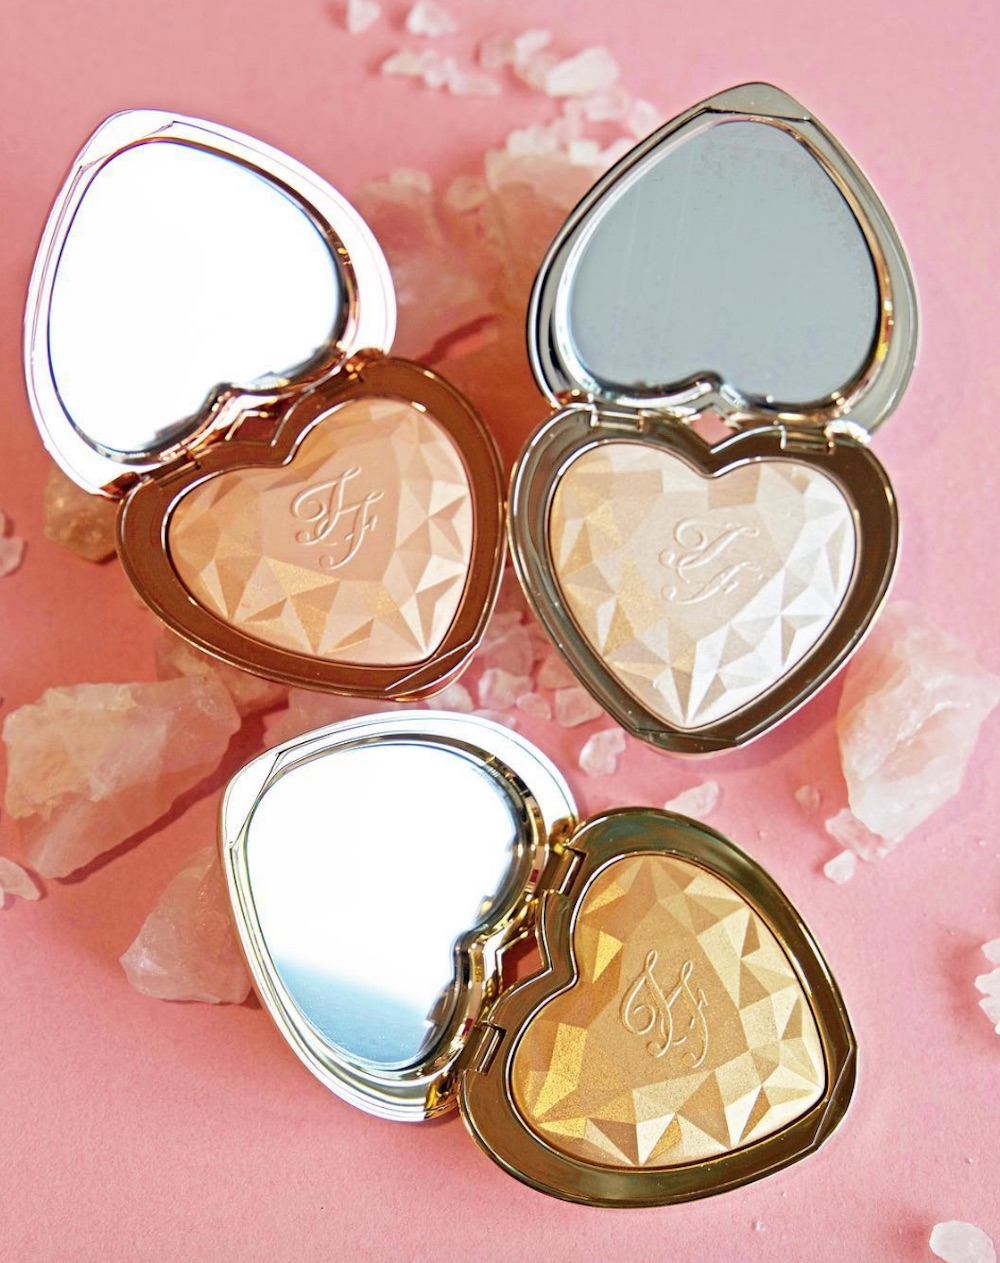 Too Faced's new highlighters remind us of crystalline hearts, and we are so in love